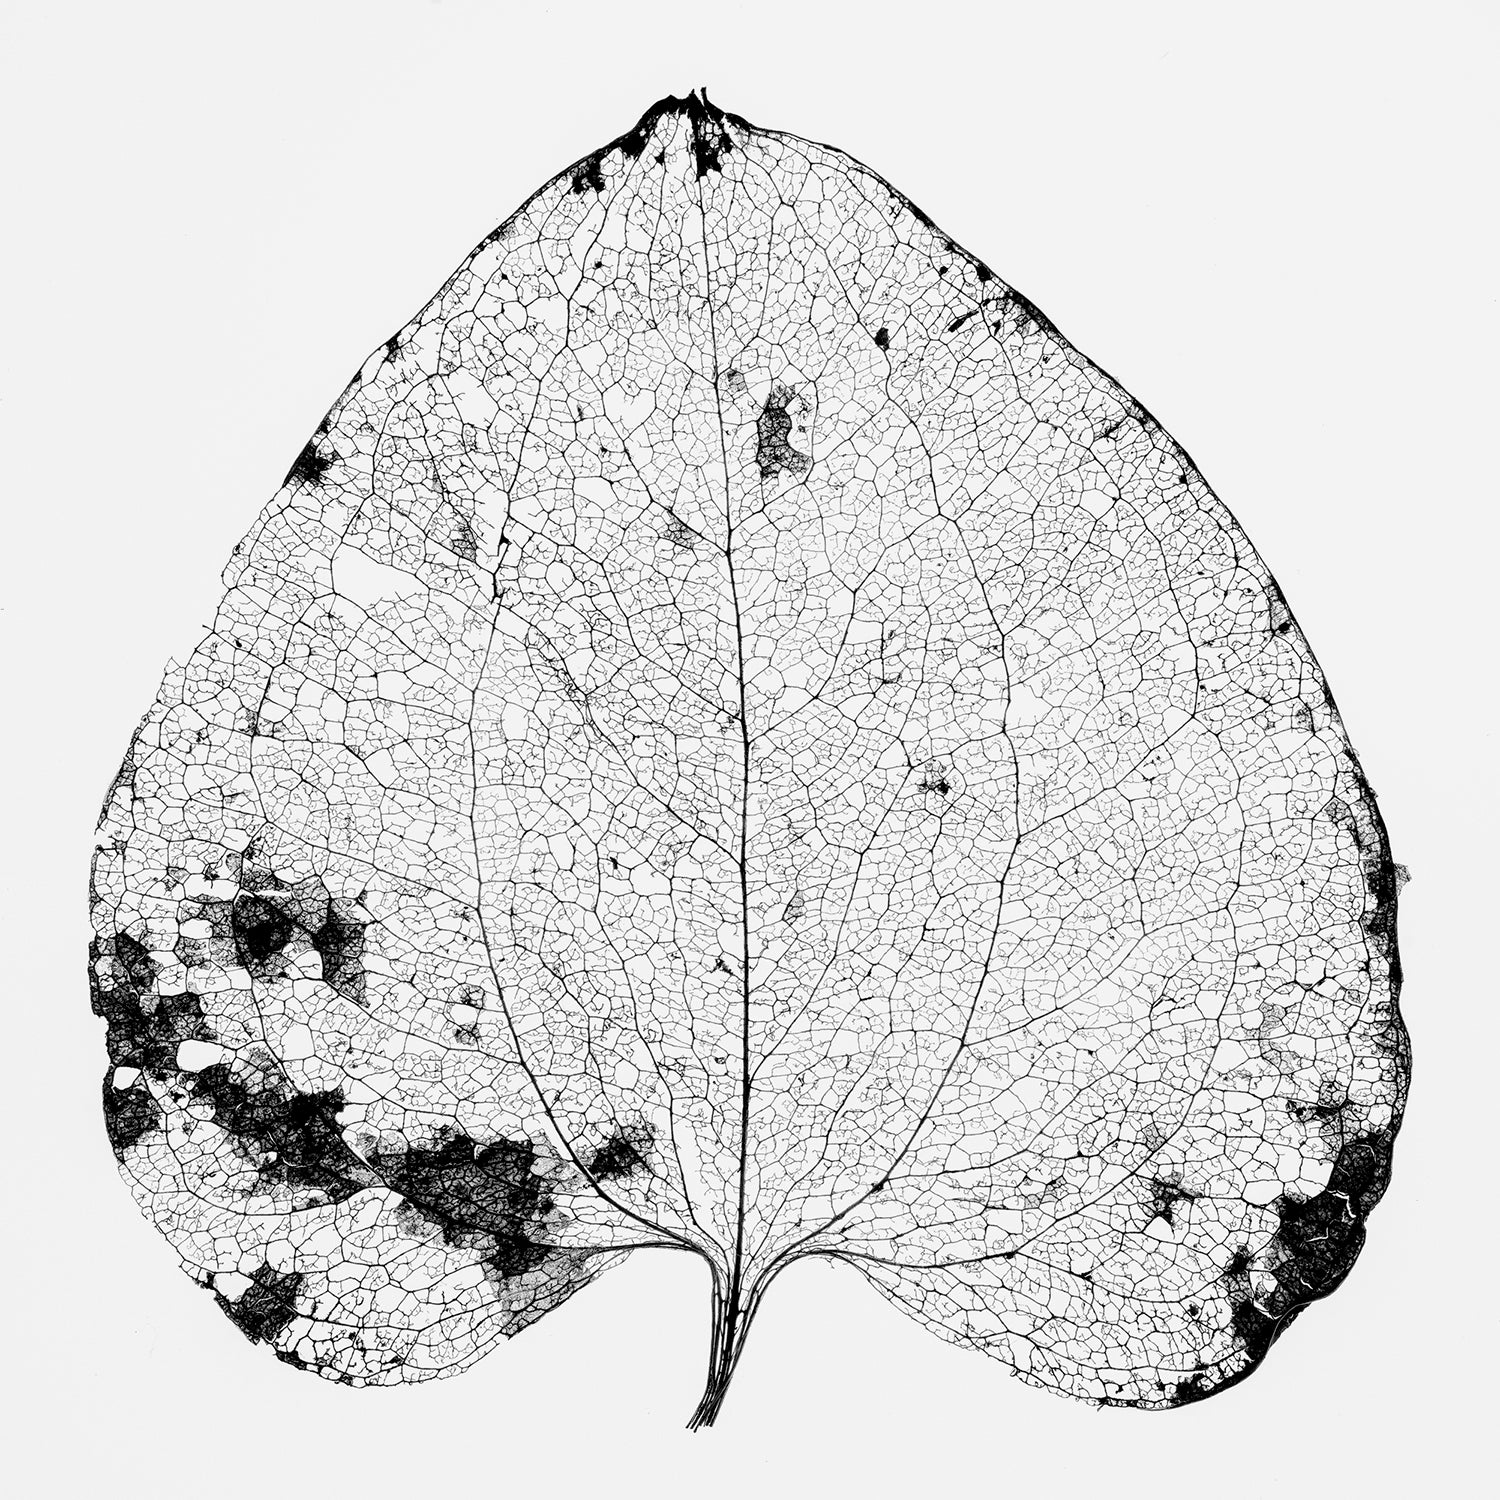 Leaf Skeleton - Black and White Photograph by Keith Dotson. Click to buy a fine art print